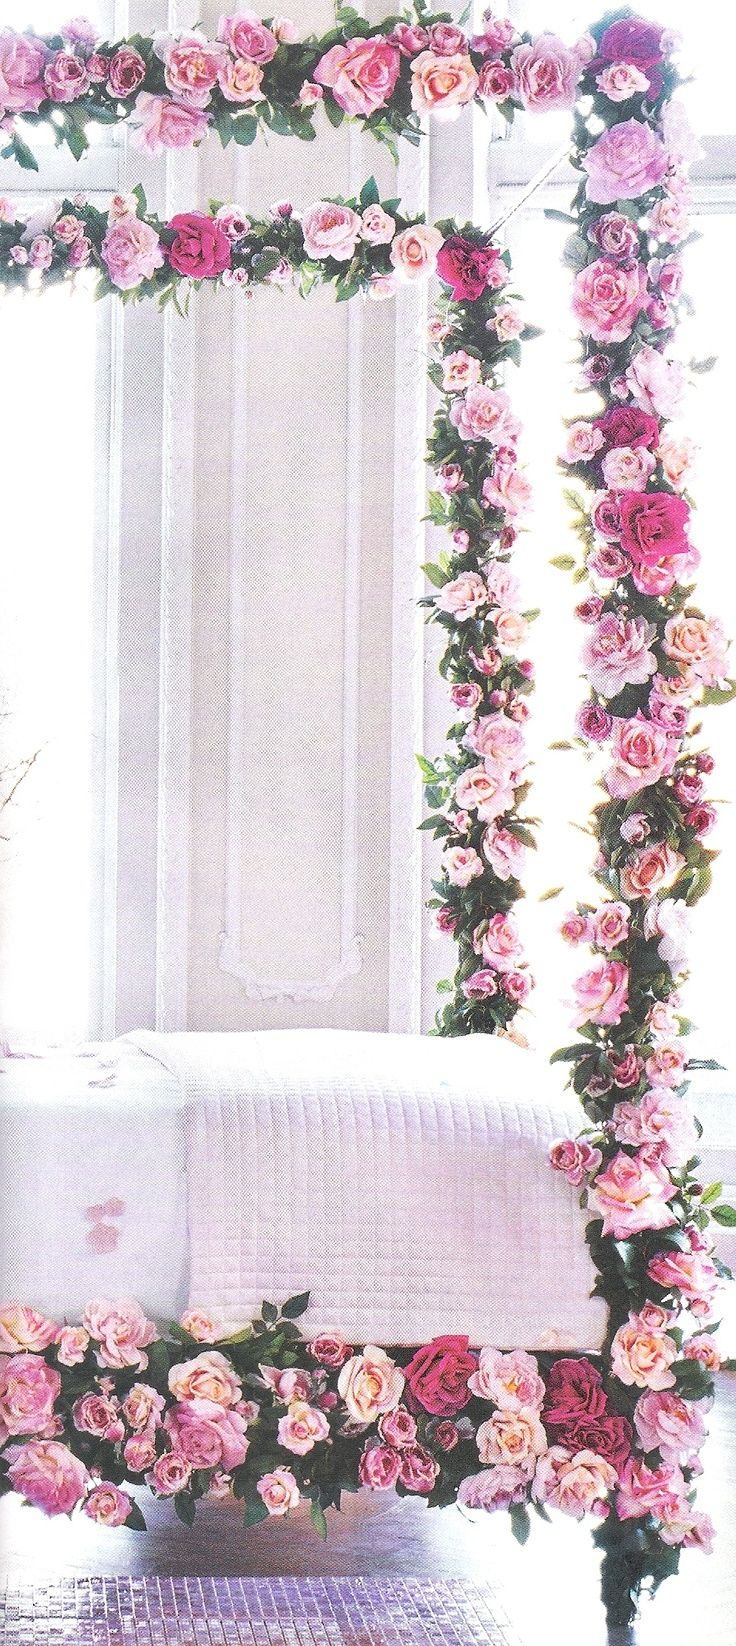 Cute for a girls bed, but how do you clean and dust it when the flowers get dirty?